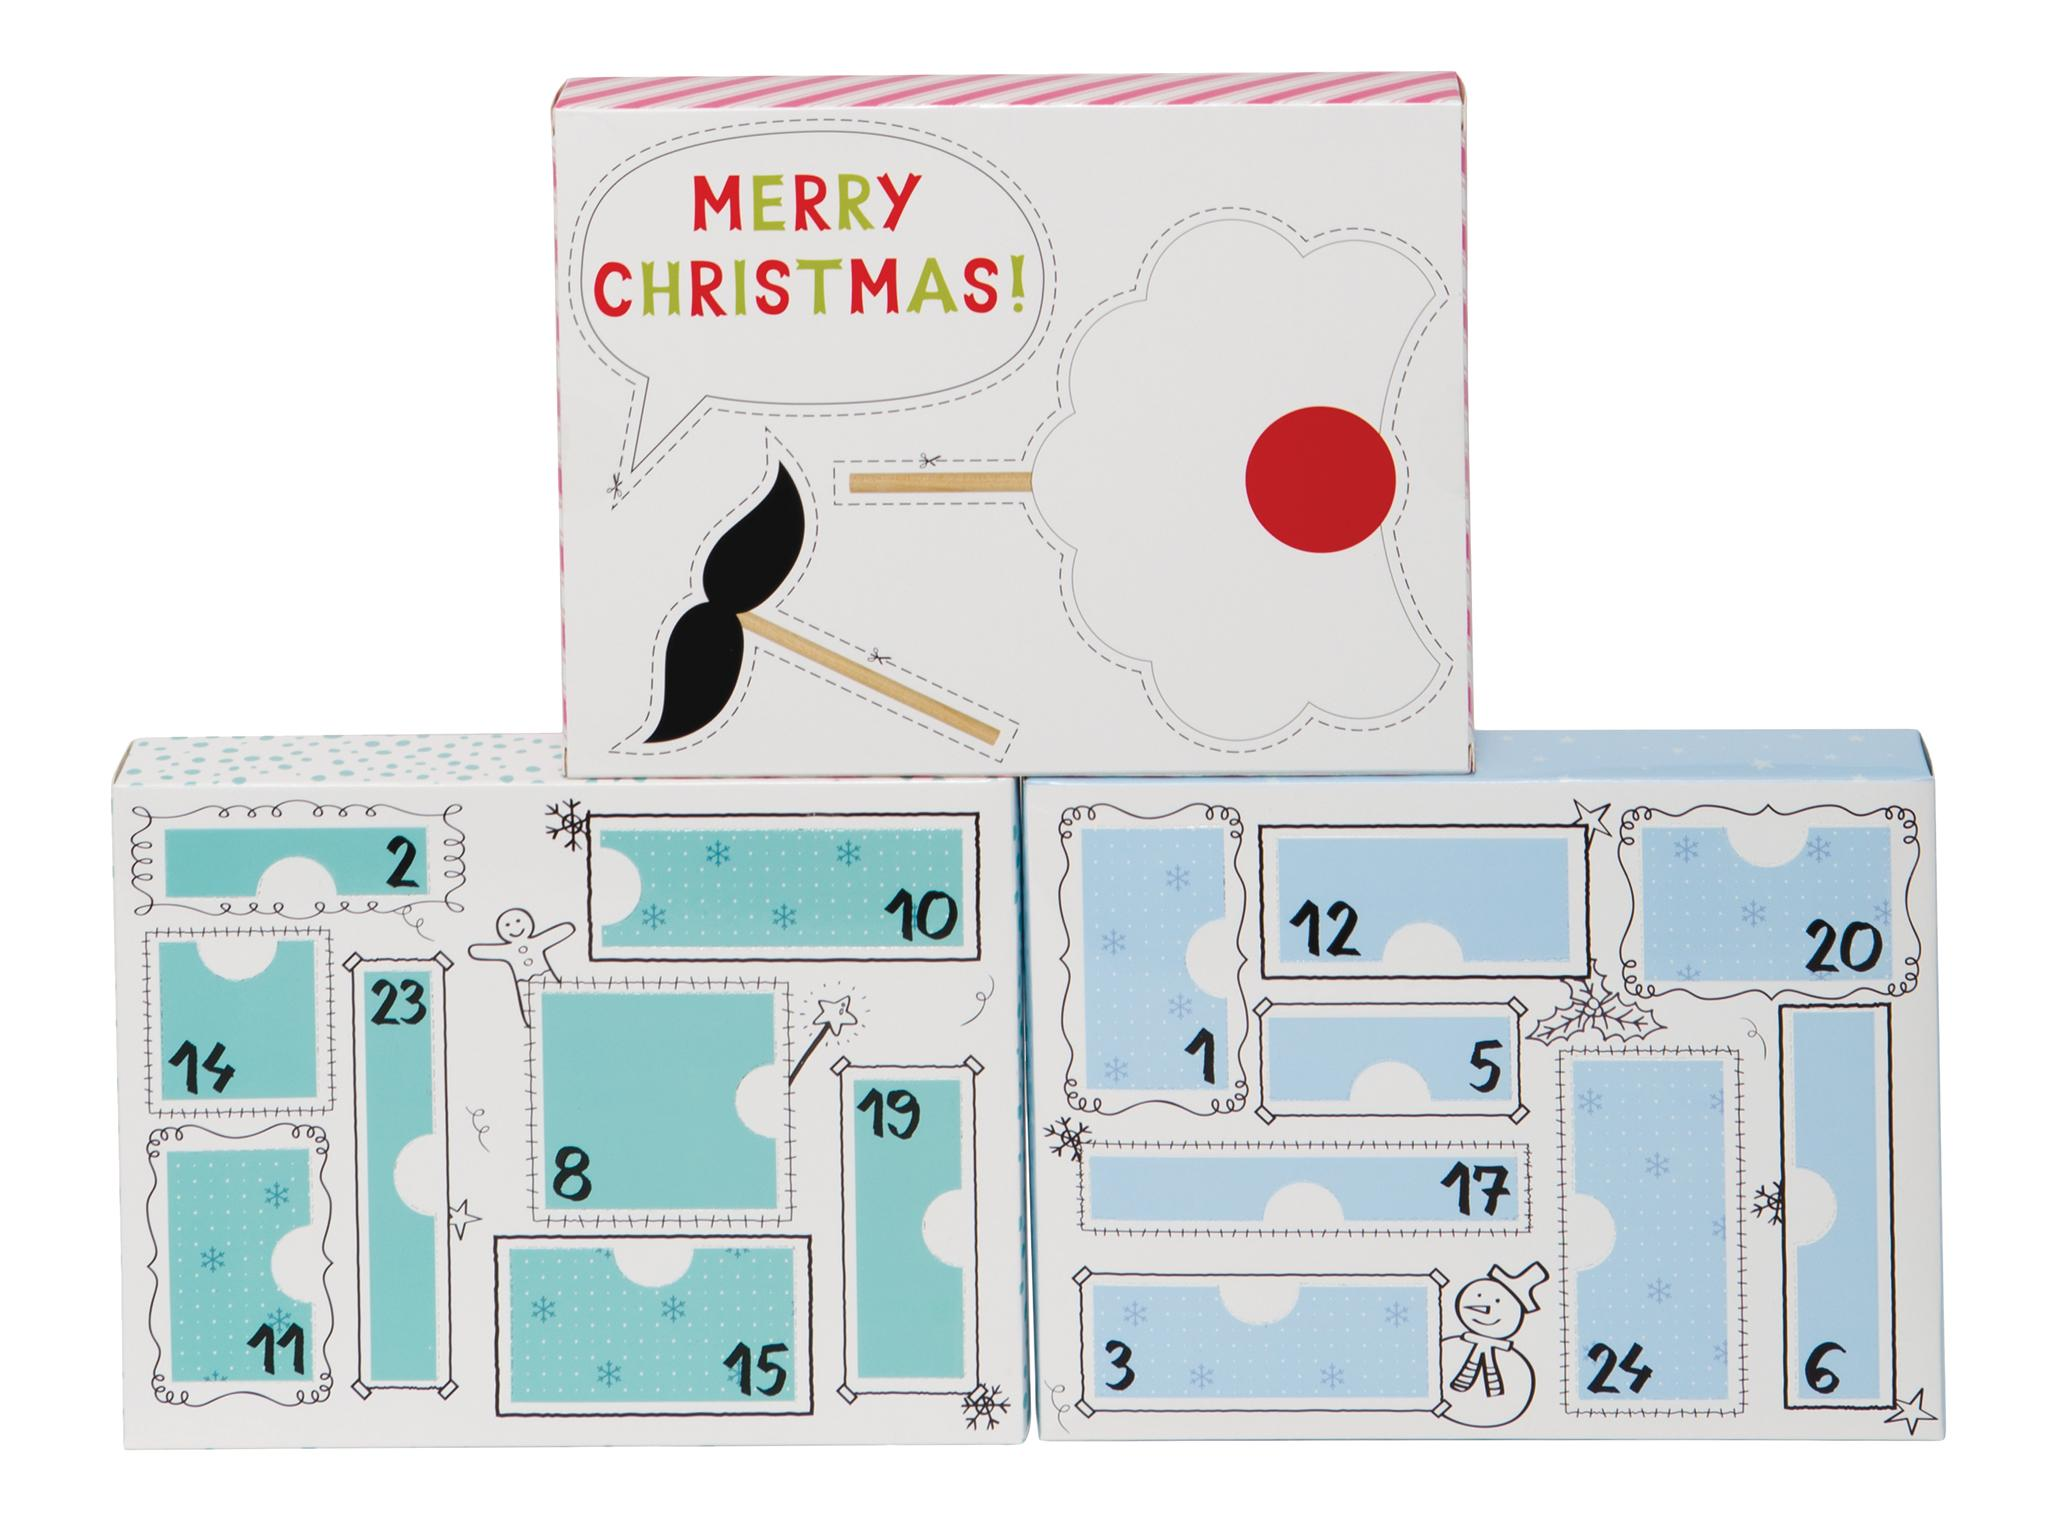 13 best alternative advent calendars for adults | The Independent